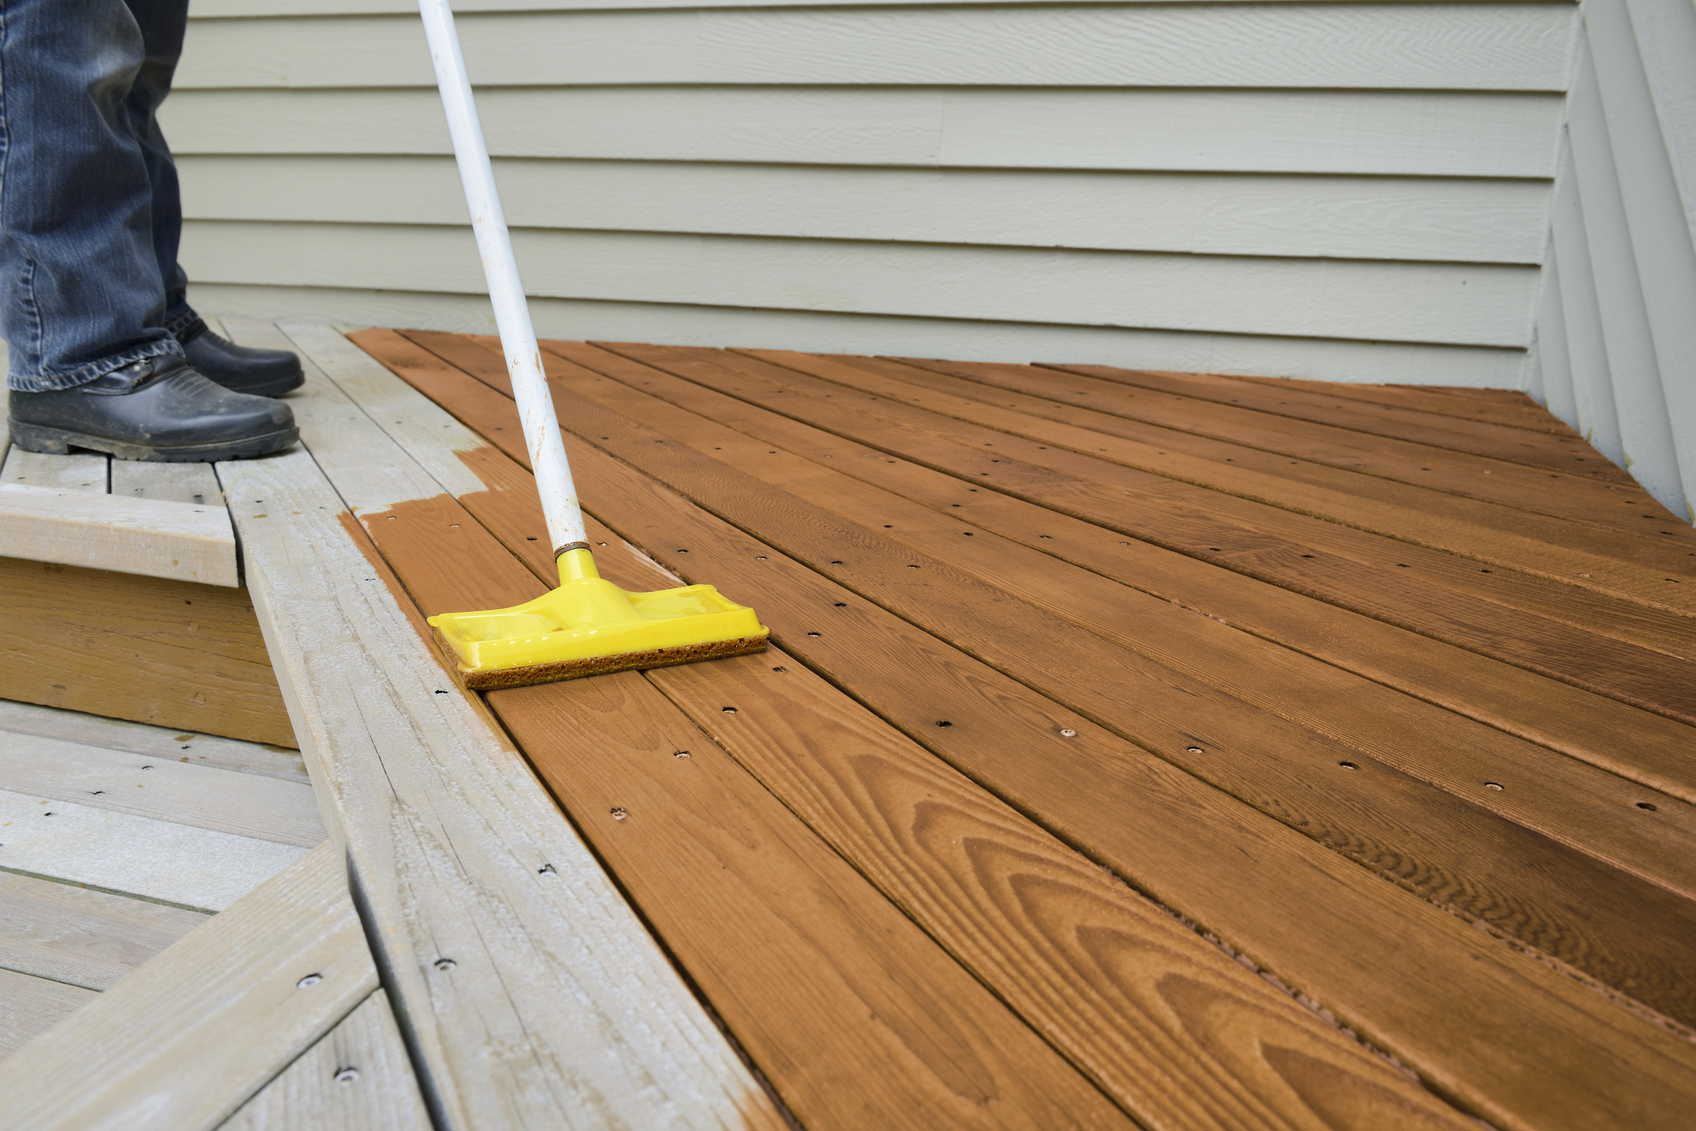 10 Best Rated Deck Stains | LoveToKnow